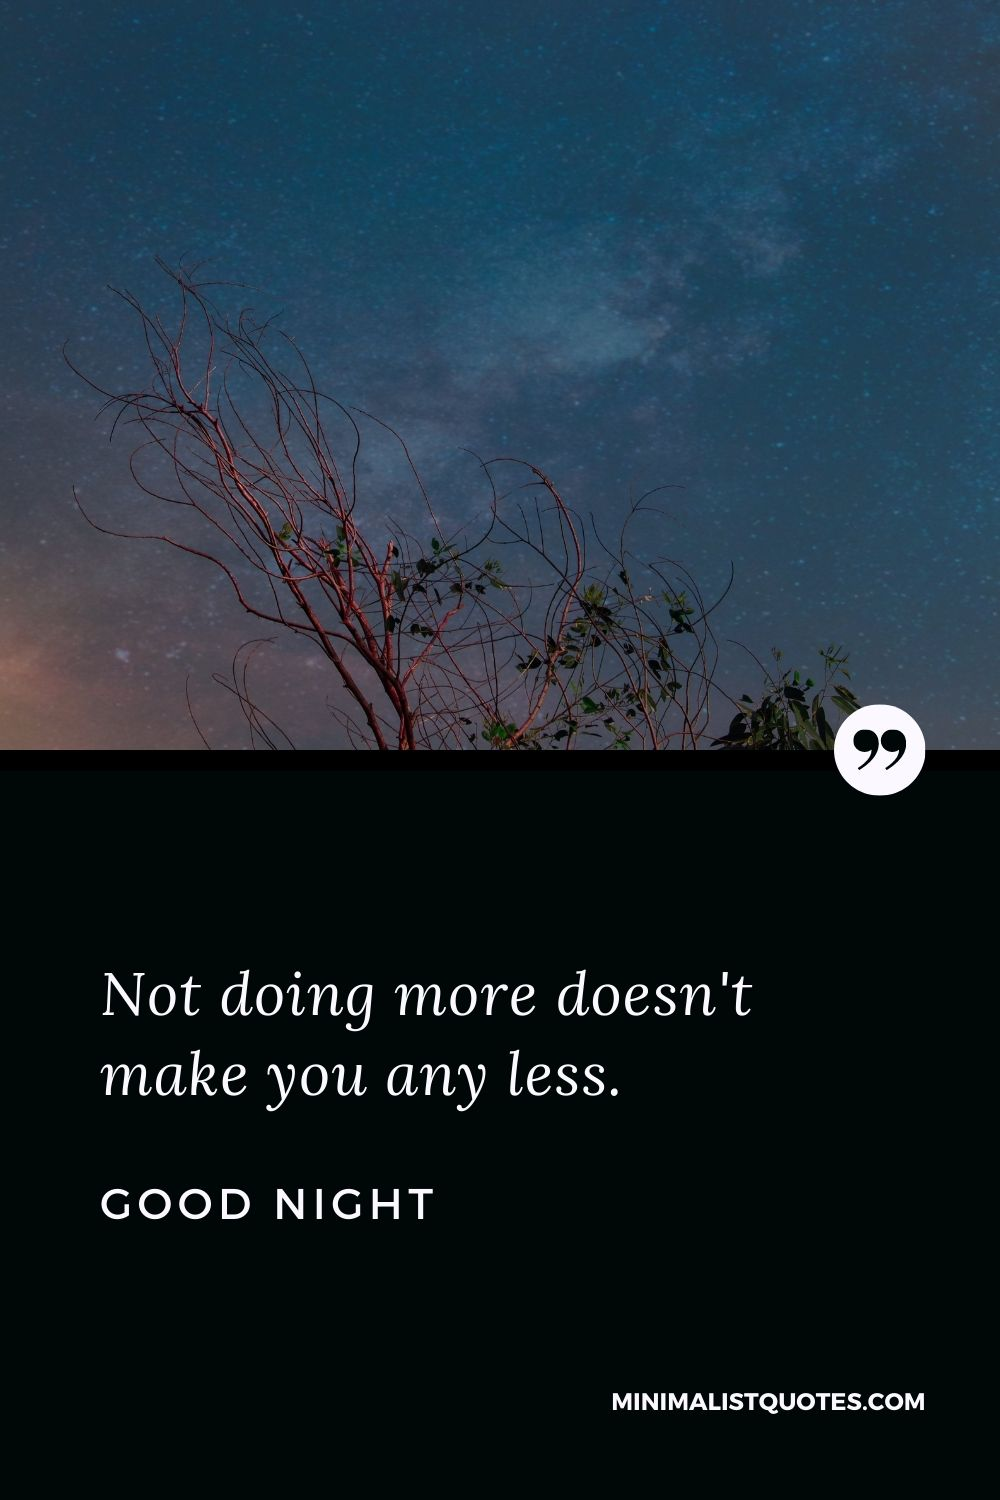 Good Night Wishes - Not doing more doesn't make you any less.